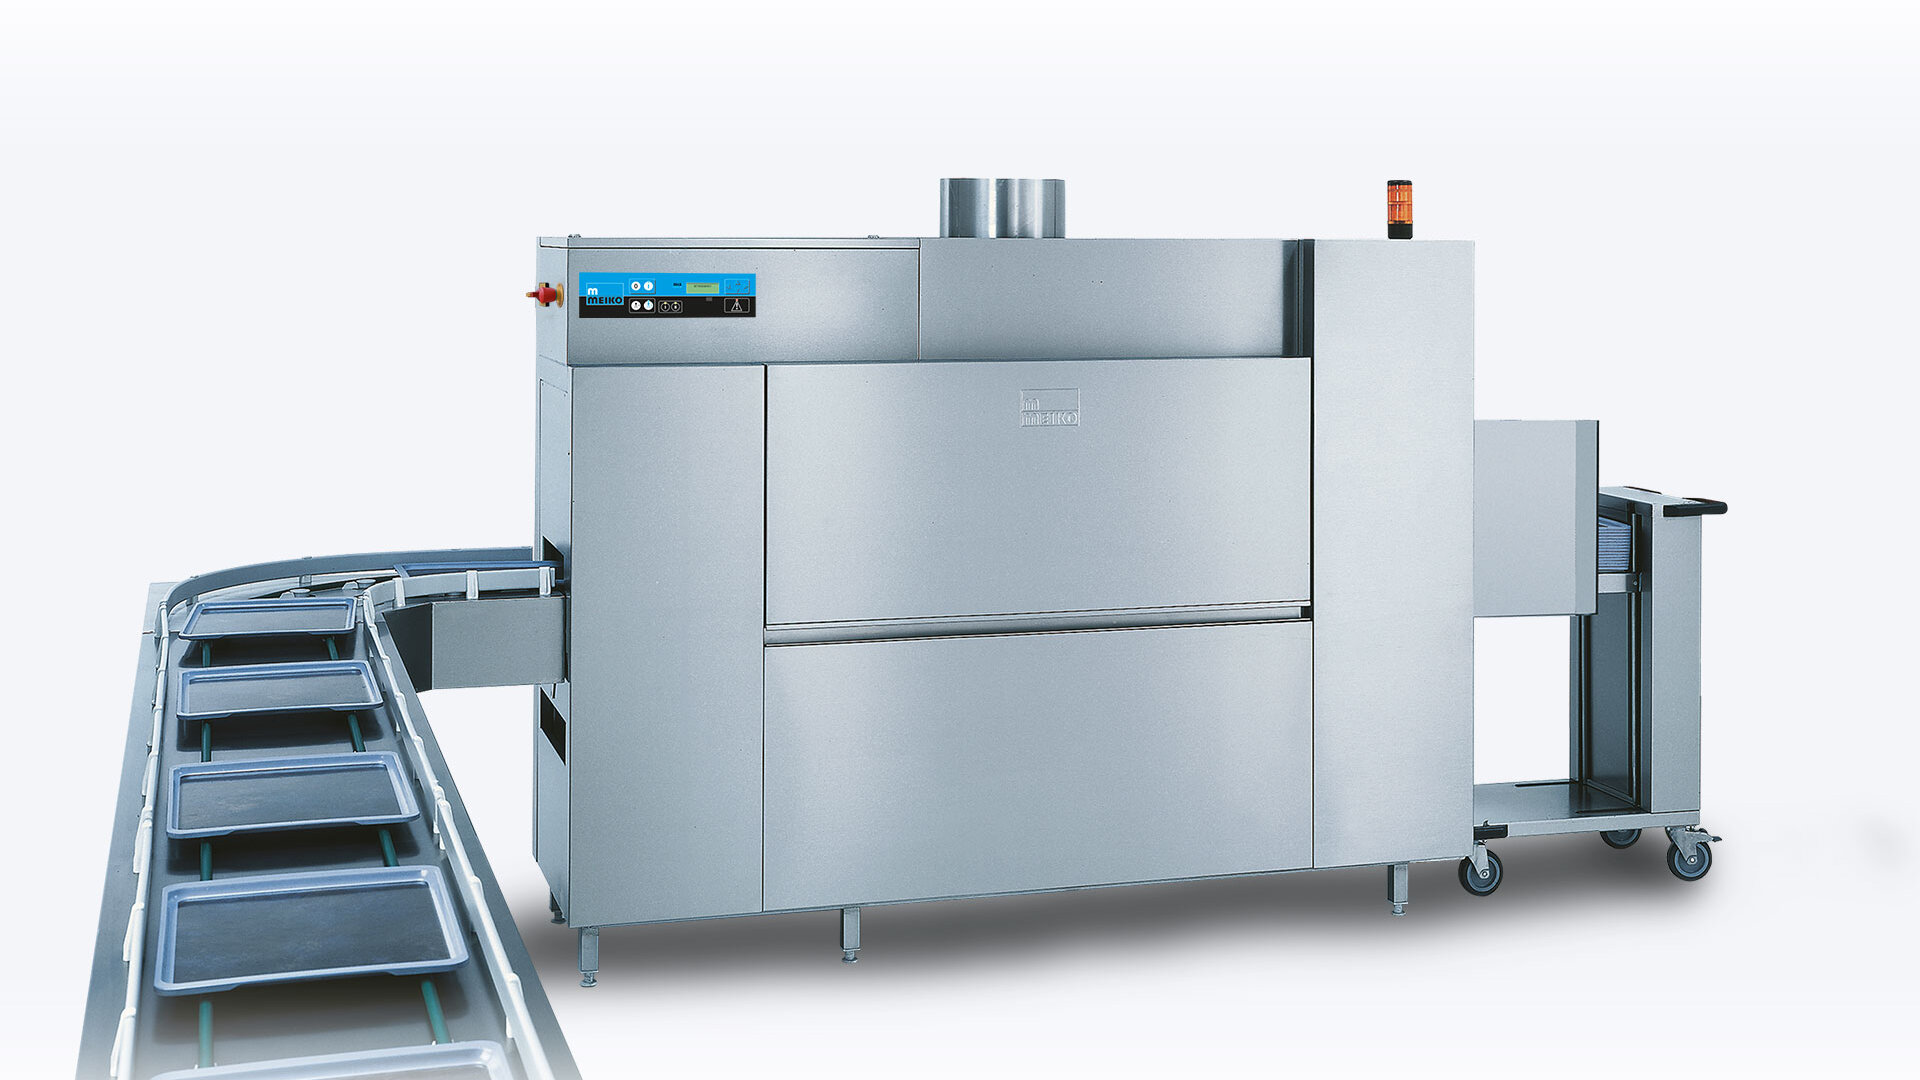 BTA tray dishwasher